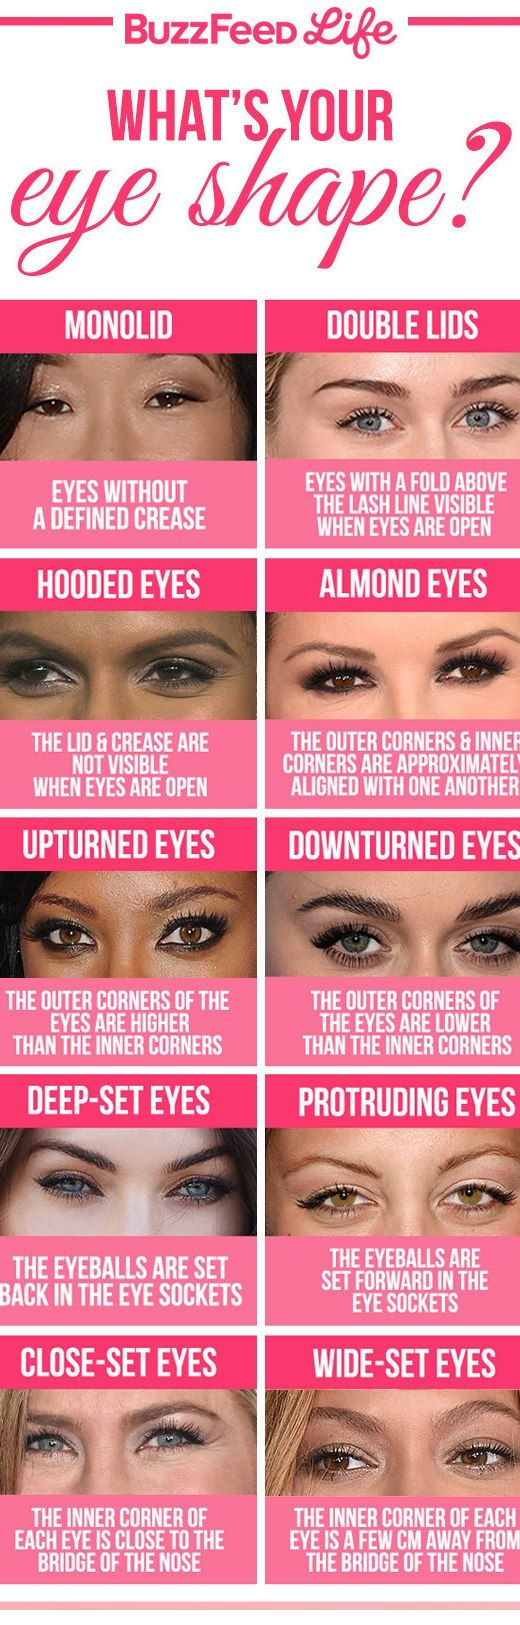 12 Tips for A Perfect Eye Shadow Makeup: #No.2 Make Clear What Your Eye Shape Is